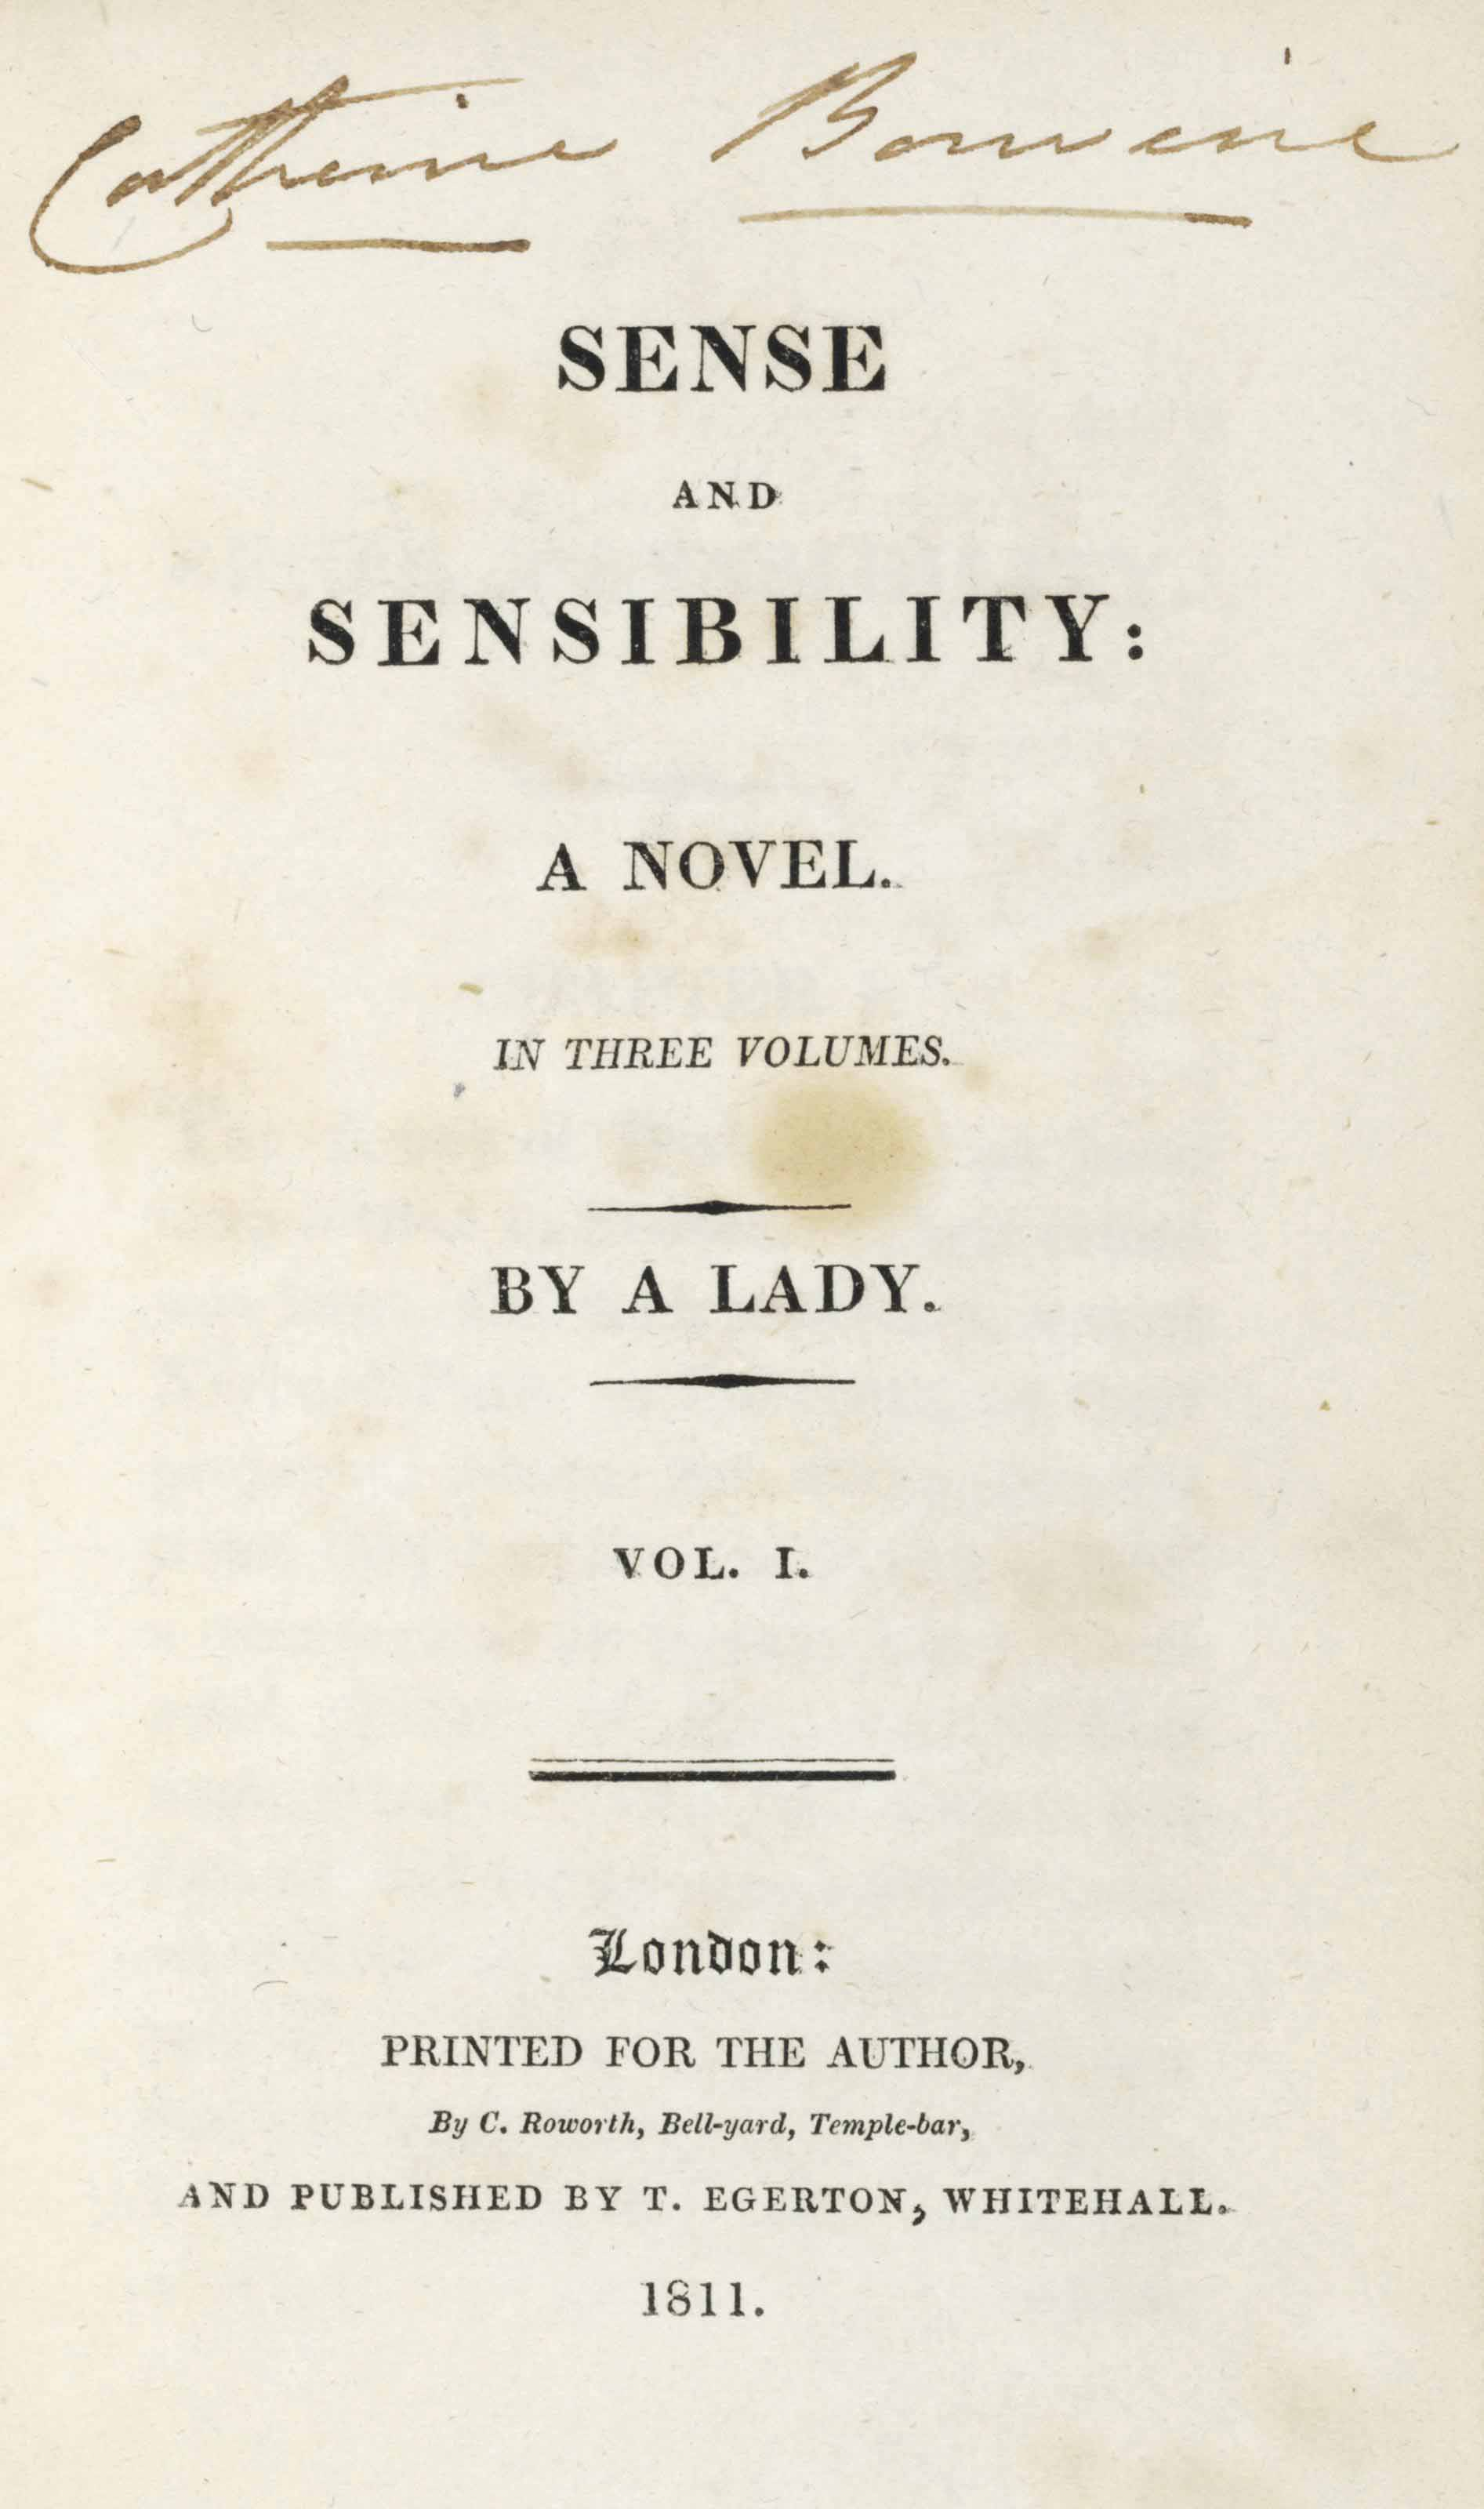 [AUSTEN, Jane (1775-1817)]. Sense and Sensibility: A Novel in Three Volumes By a Lady. London: for the author by C. Roworth and published by T. Egerton, 1811.